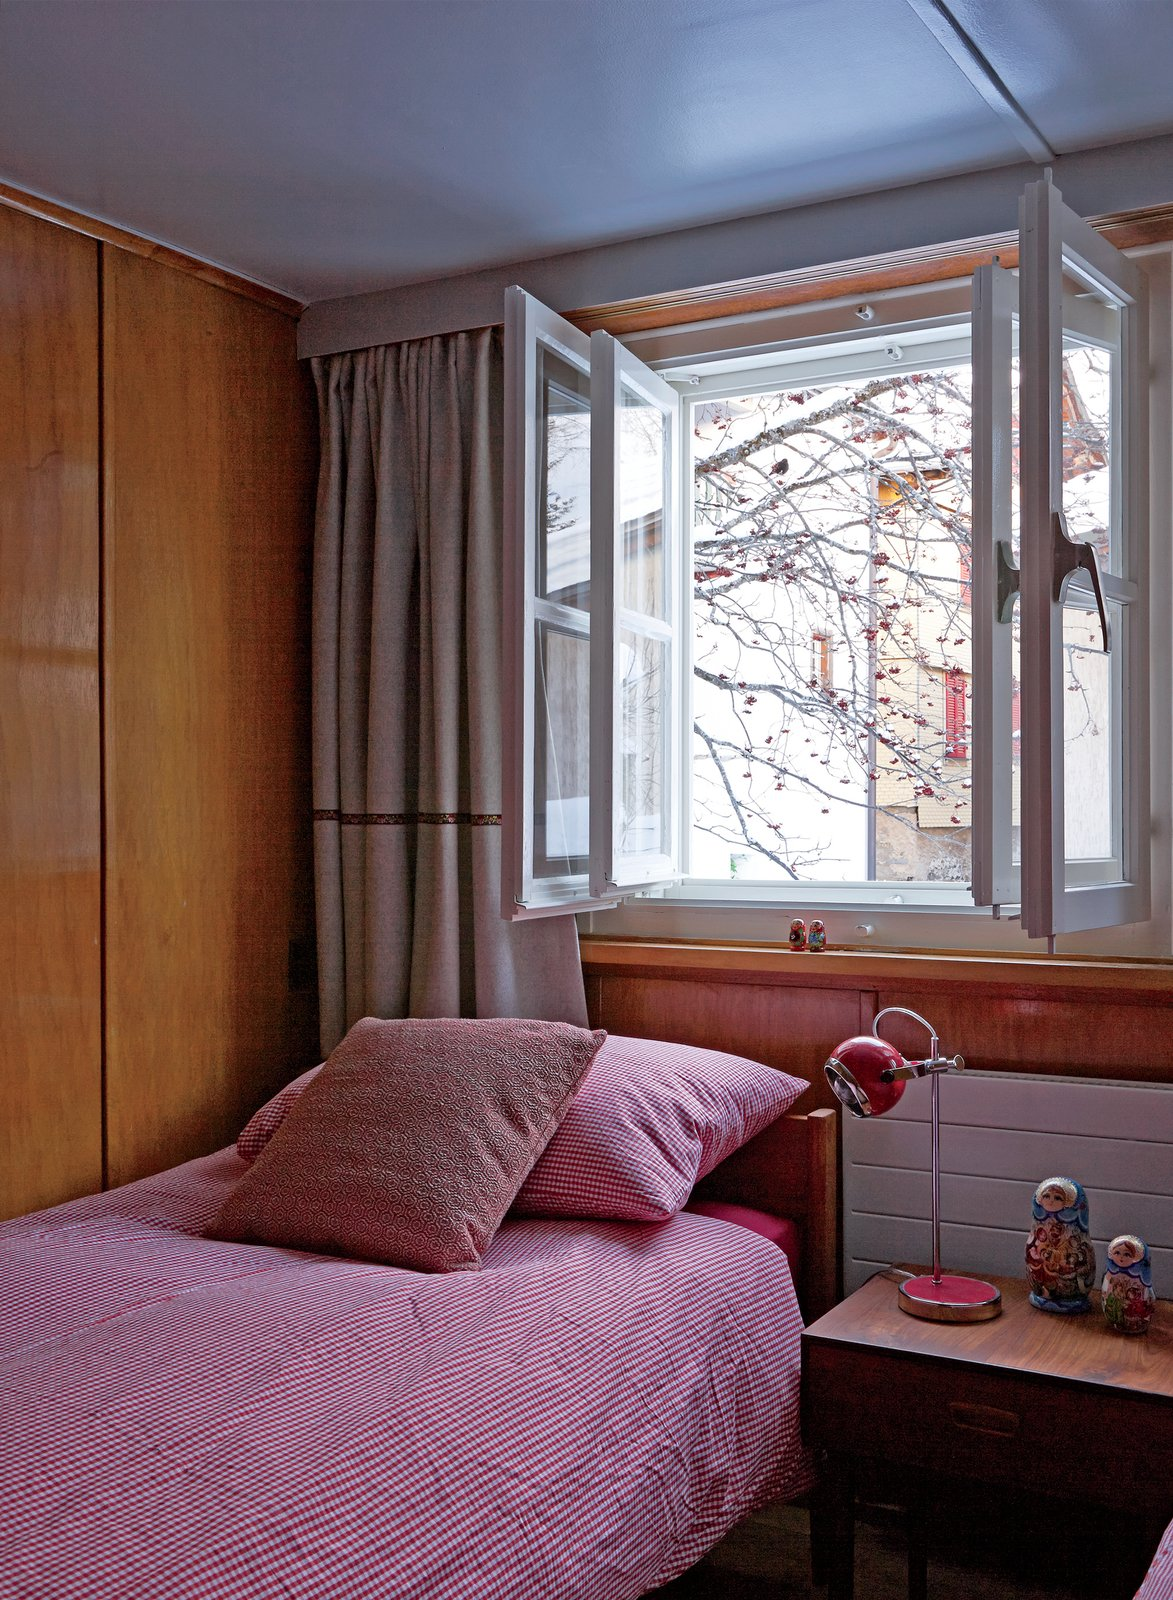 One of the daughters' rooms has a Danish rosewood bed and side table from Modernistiks. Tuckey found the 1970s red enamel-and-chrome lamp at Golborne Road market in London. Double windows help keep the Alpine winter chill at bay.  Photo 4 of 12 in A Sliced-Up House Comes Together Again